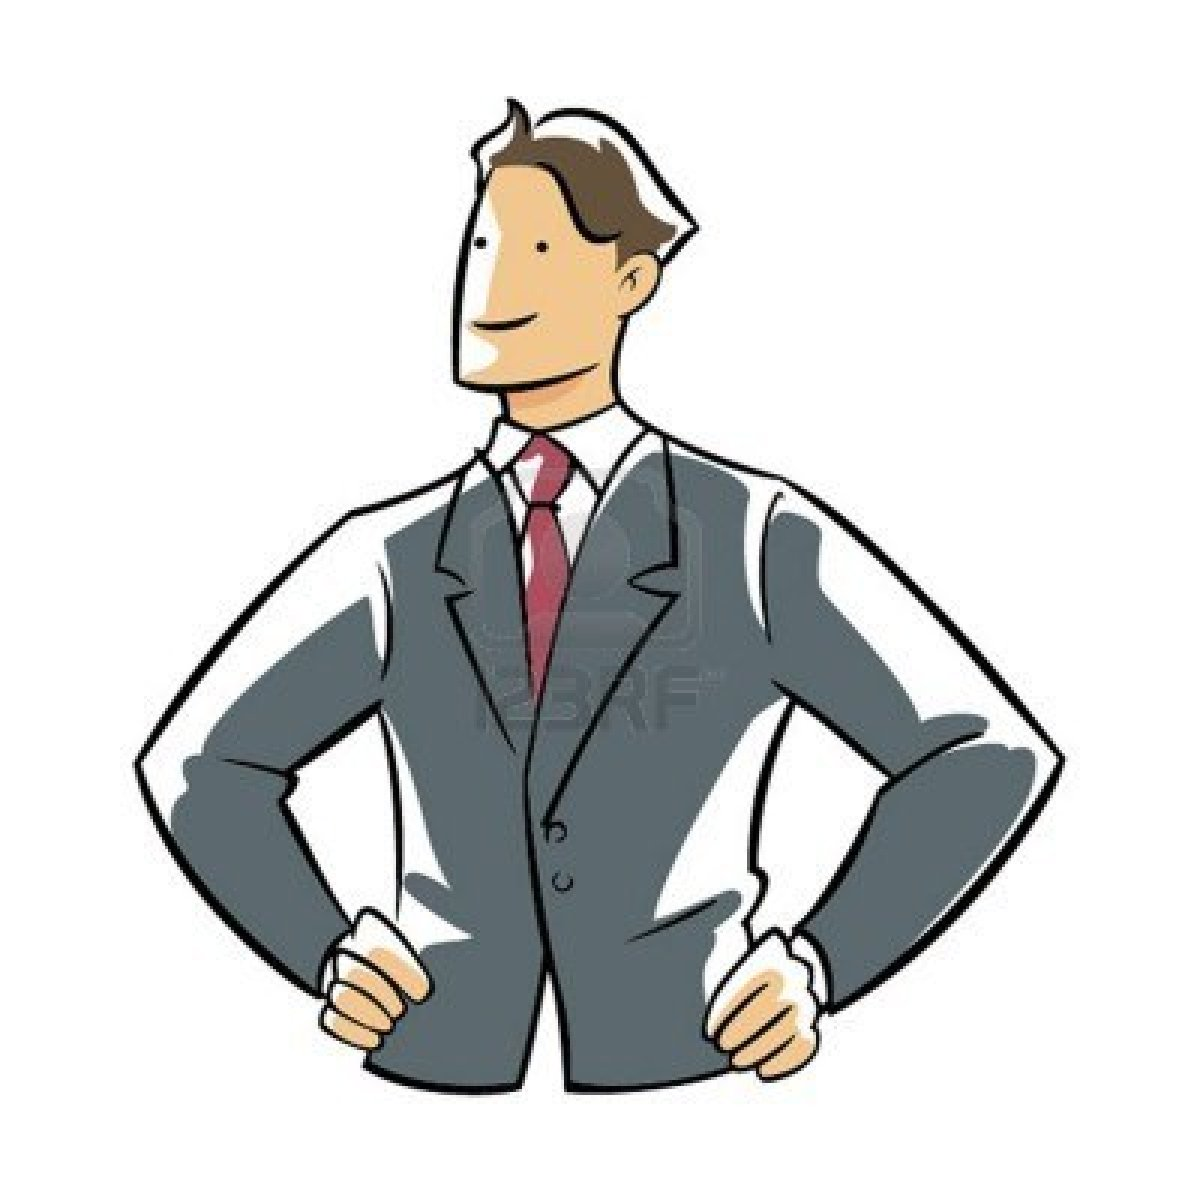 Adult clipart free download on WebStockReview.